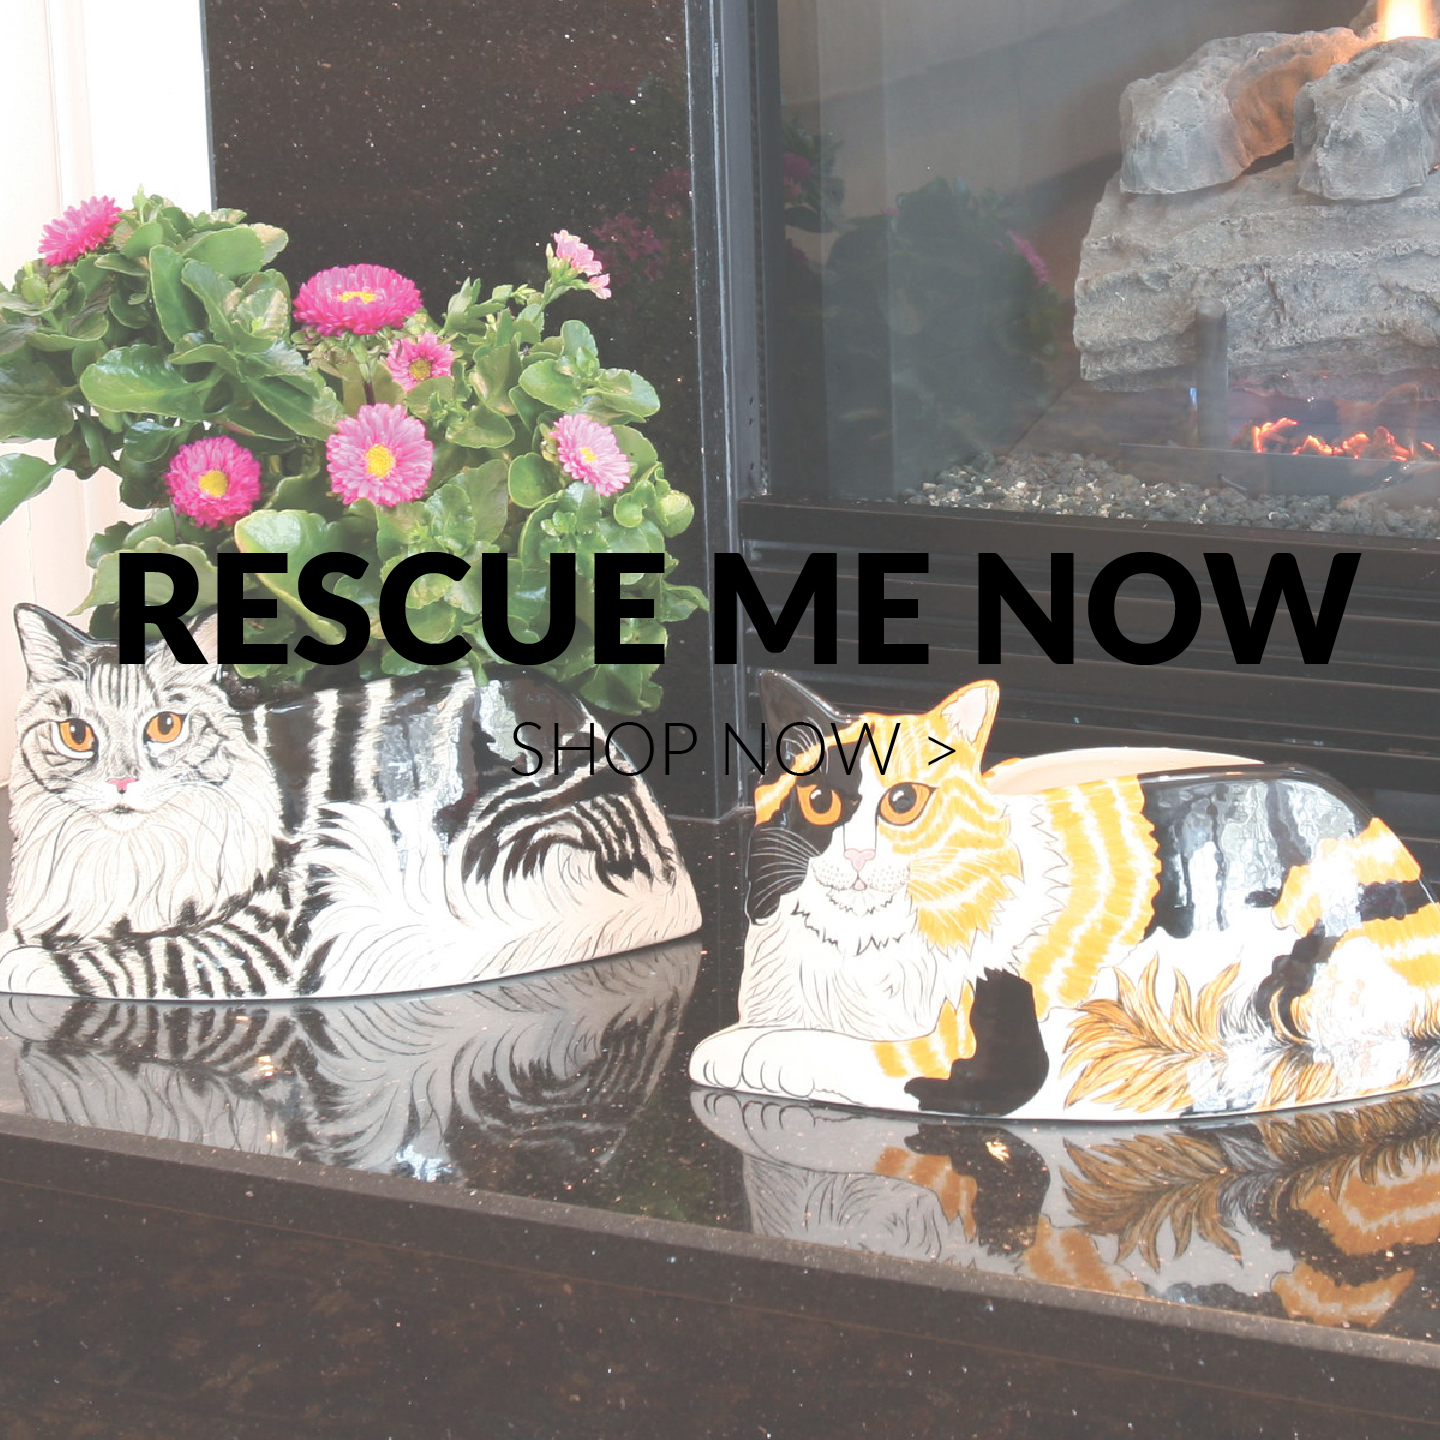 Rescue Me Now by Nina Lyman